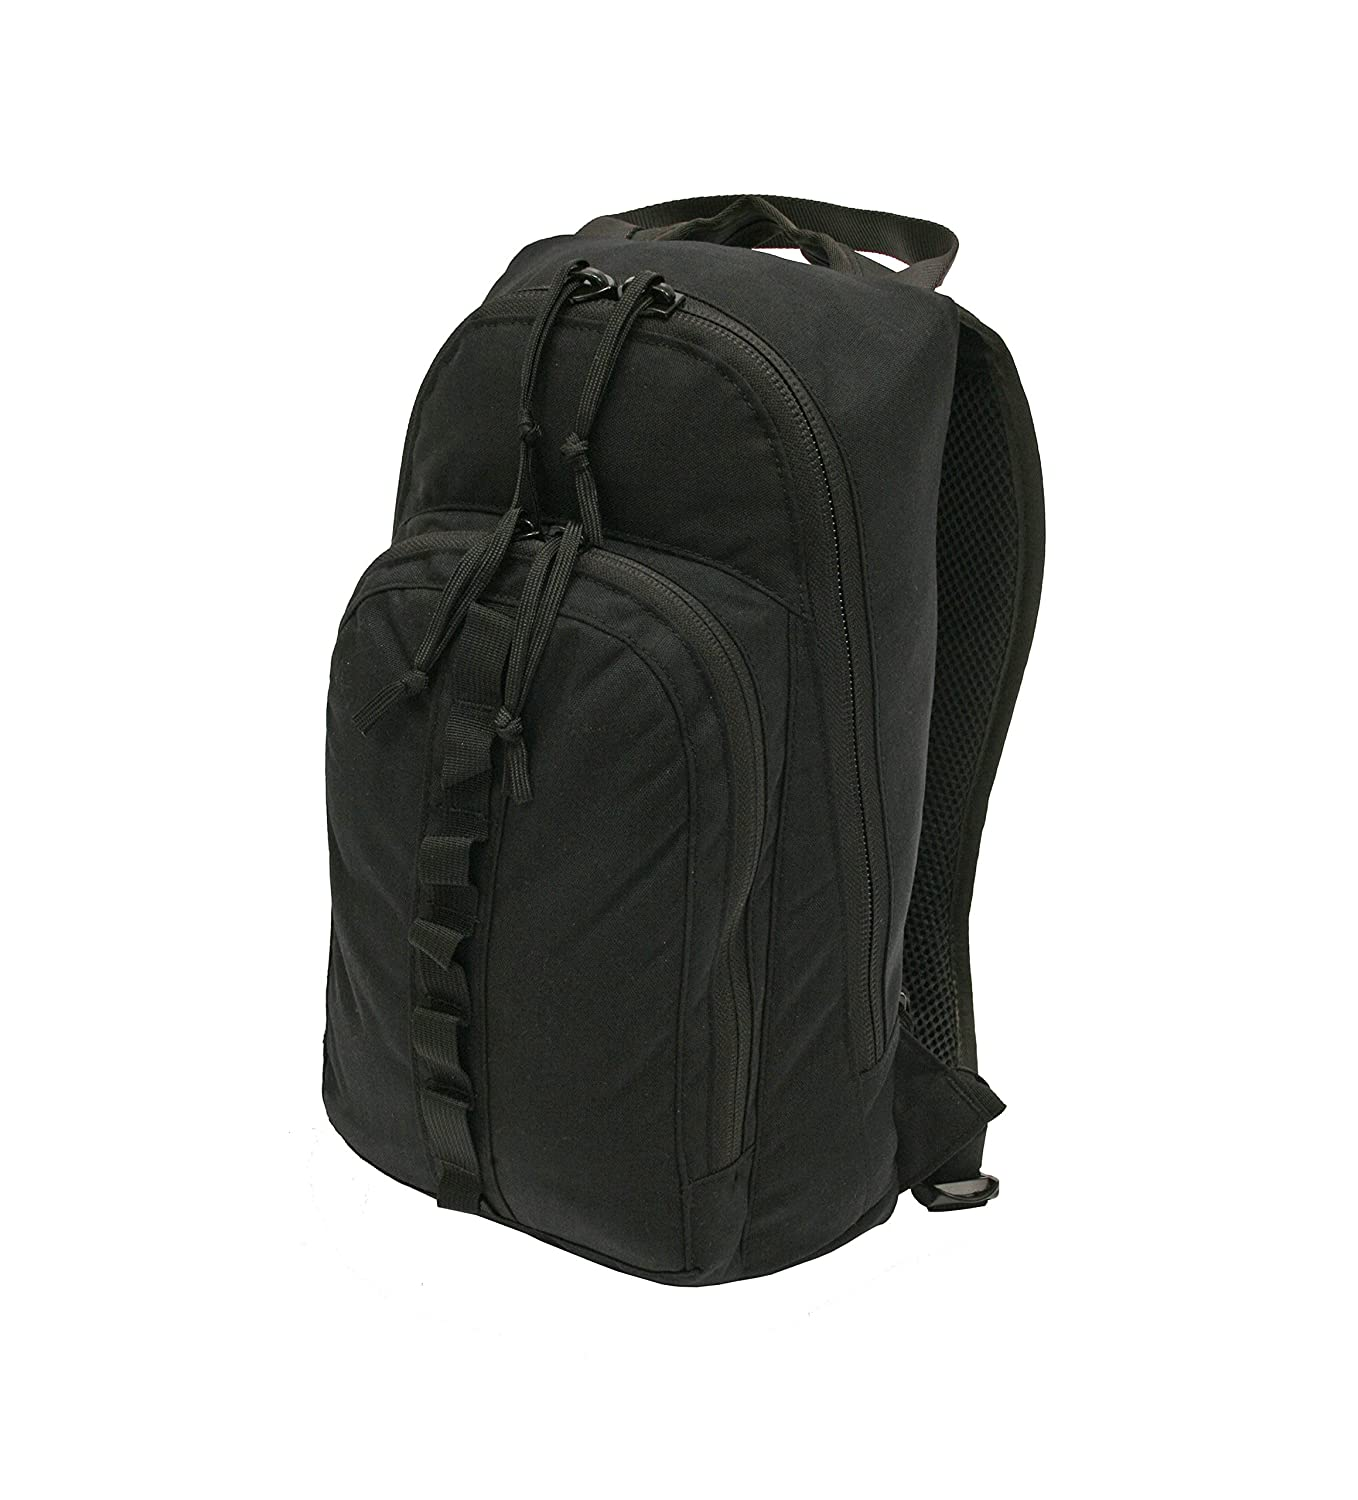 Tactical Tailor Concealed Carryバックパック、ワンサイズ、ブラック   B0199WTZ8W